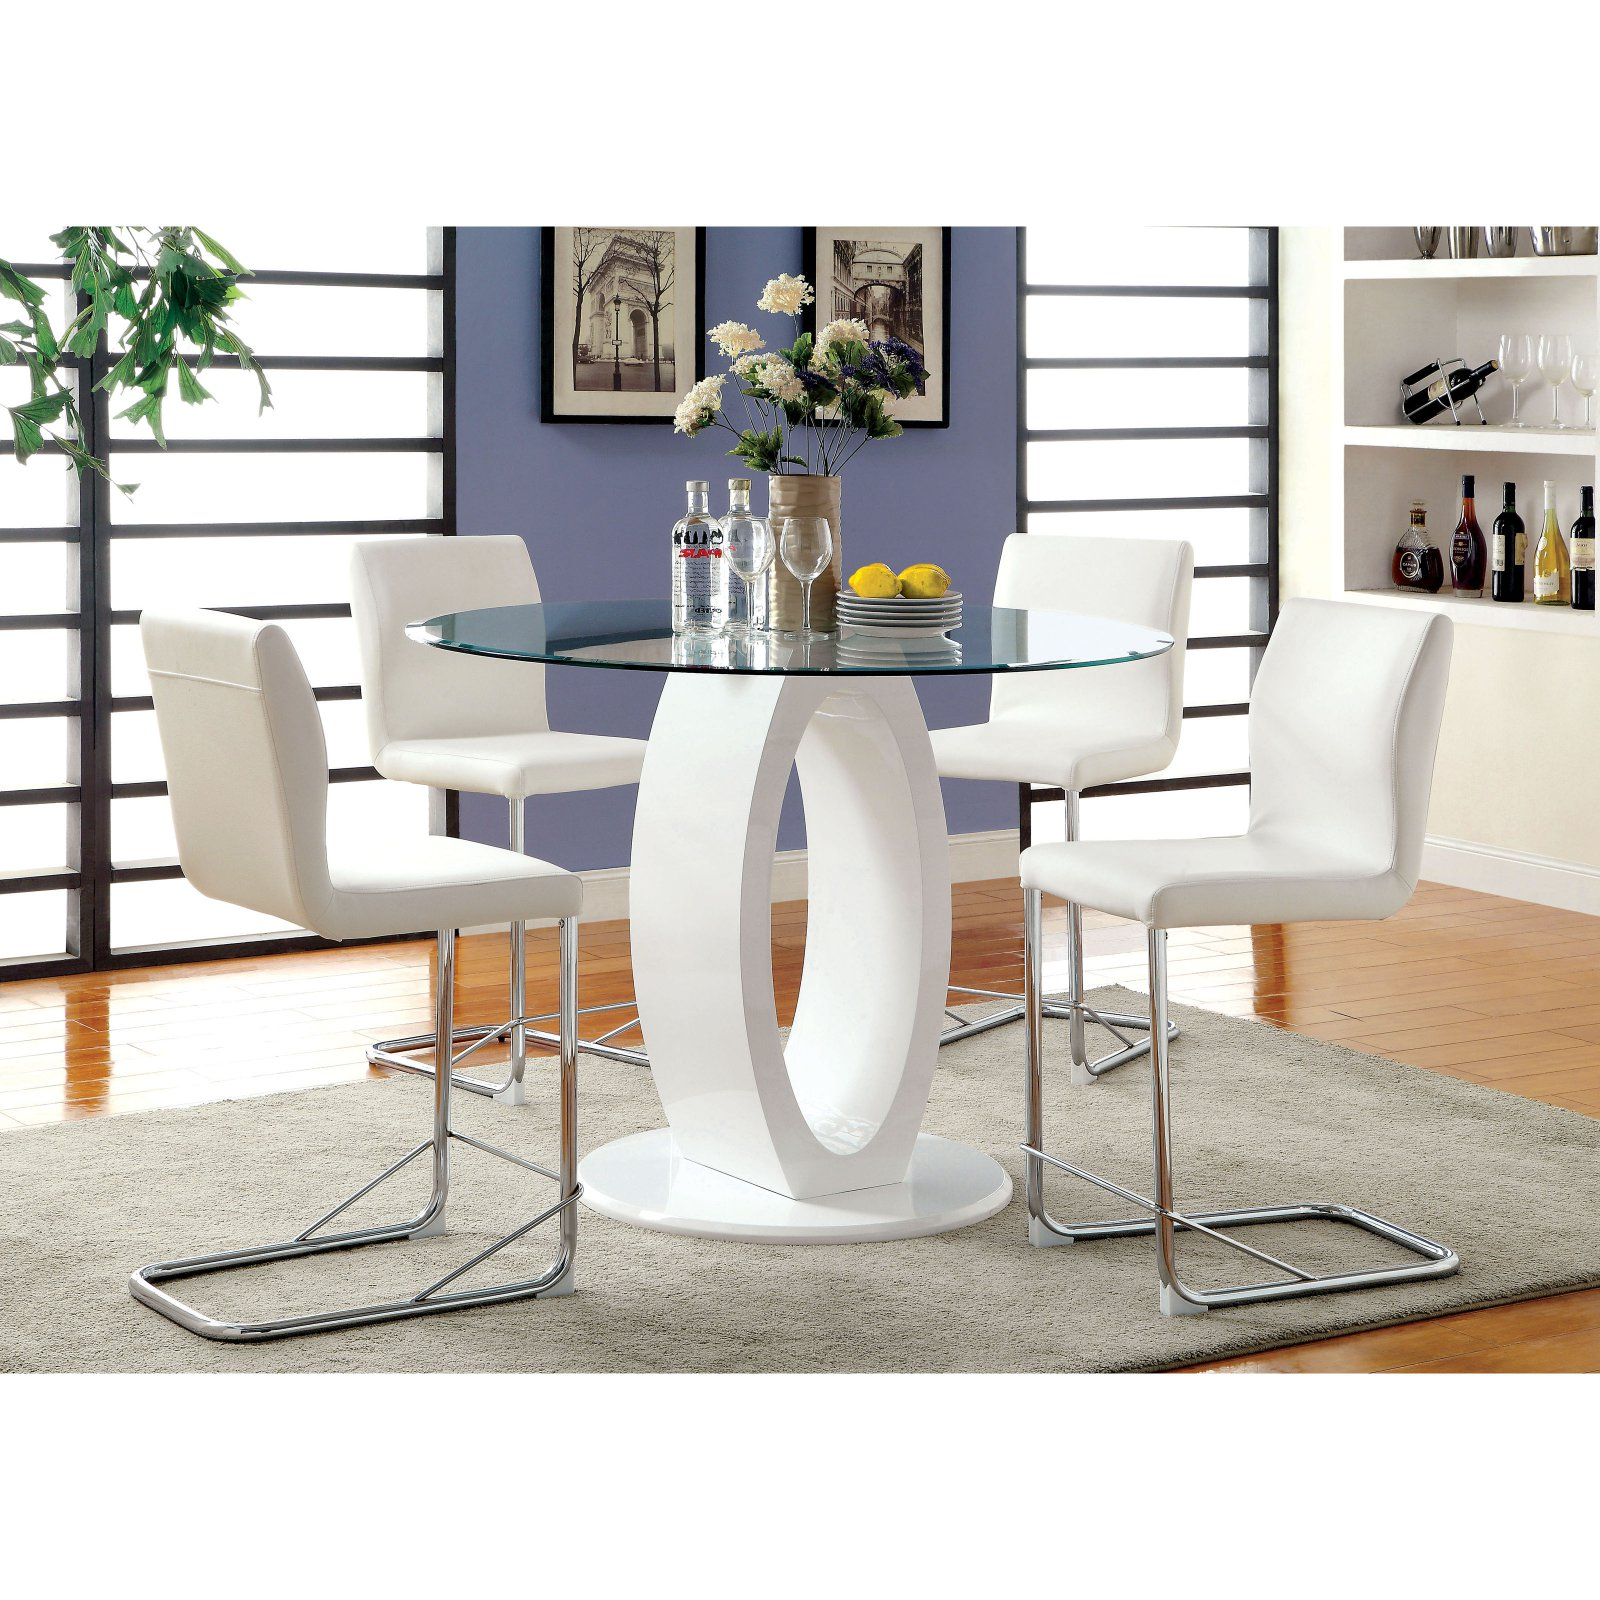 Furniture of America Damore Contemporary 5 Piece Counter Height High Gloss Round Dining Table Set - White